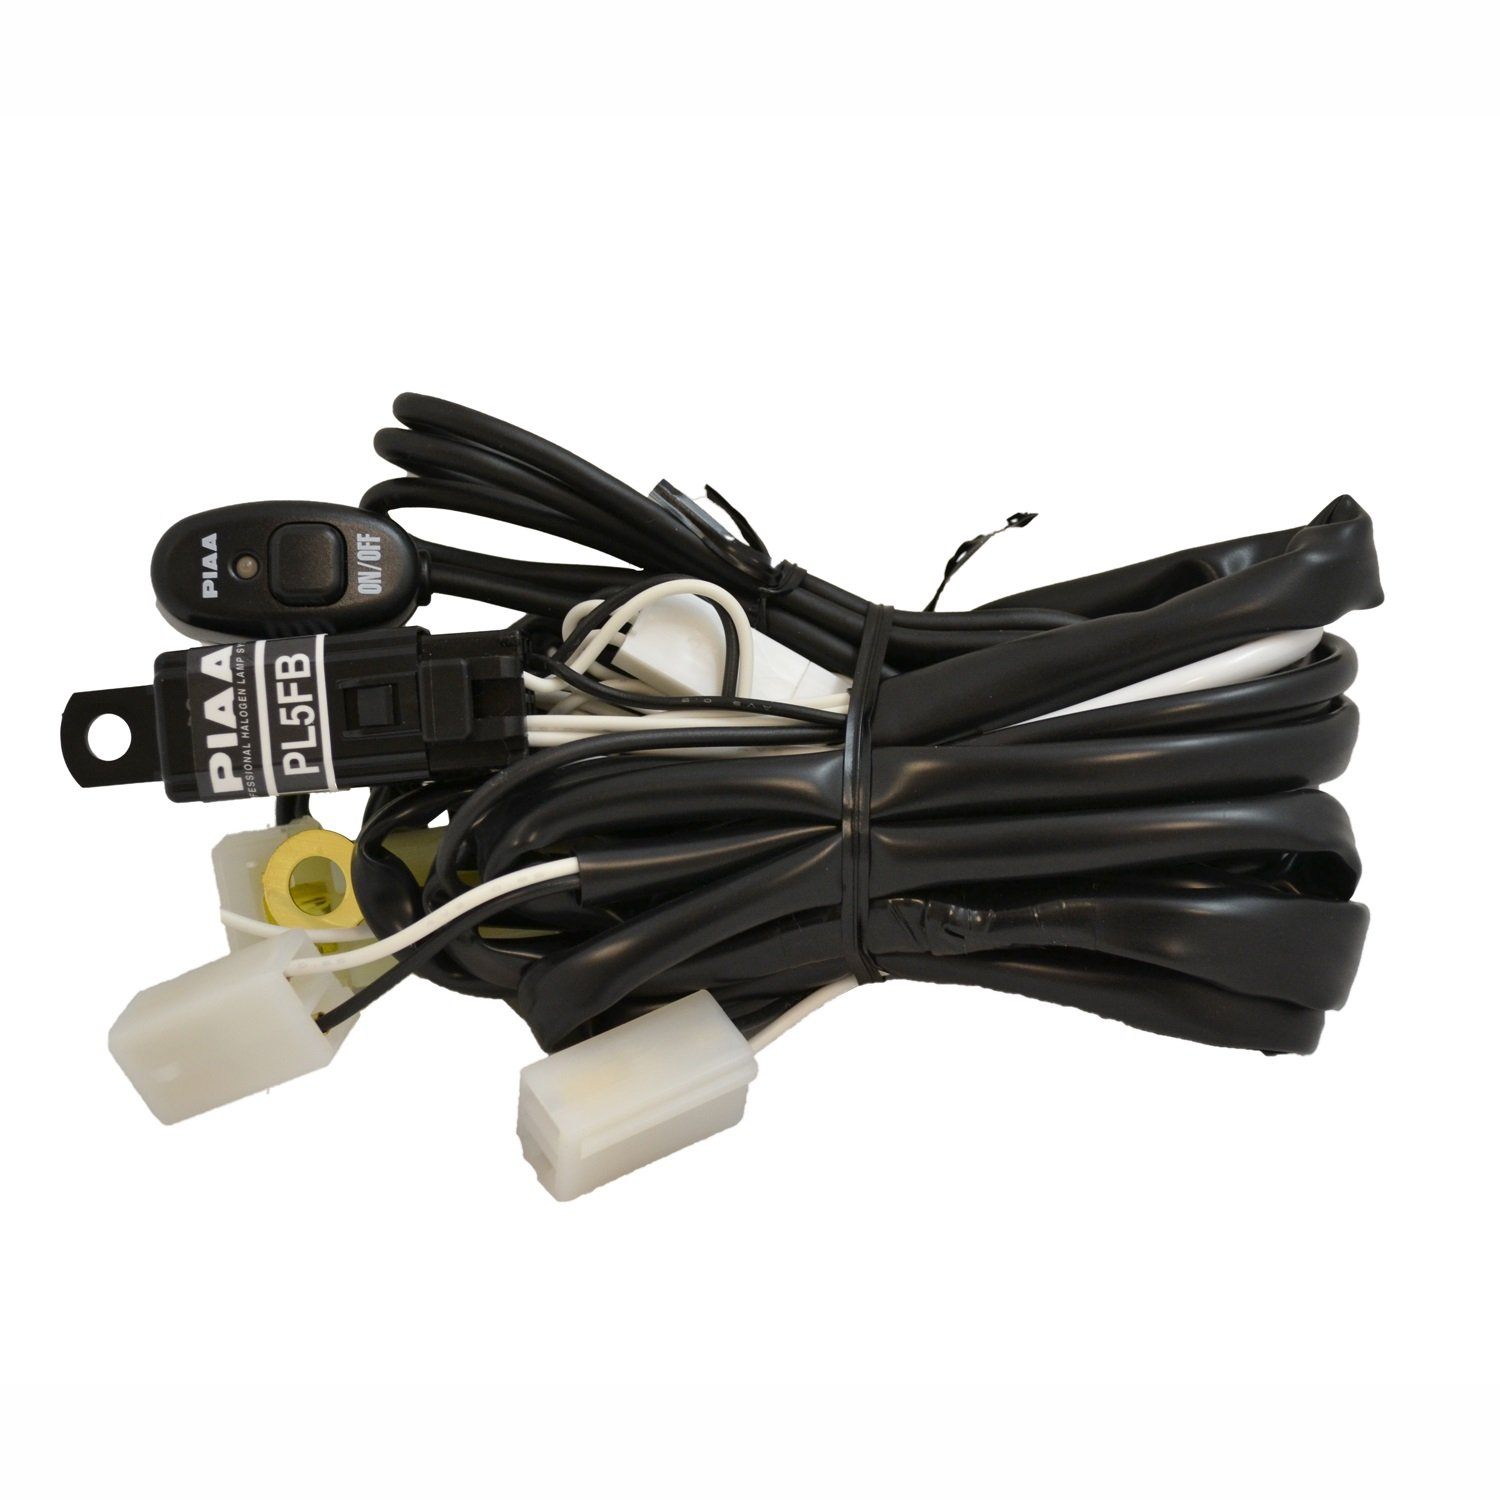 616IEfhfH L._SL1500_ amazon com piaa 34085 lamp wiring harness automotive piaa 520 wiring harness at alyssarenee.co